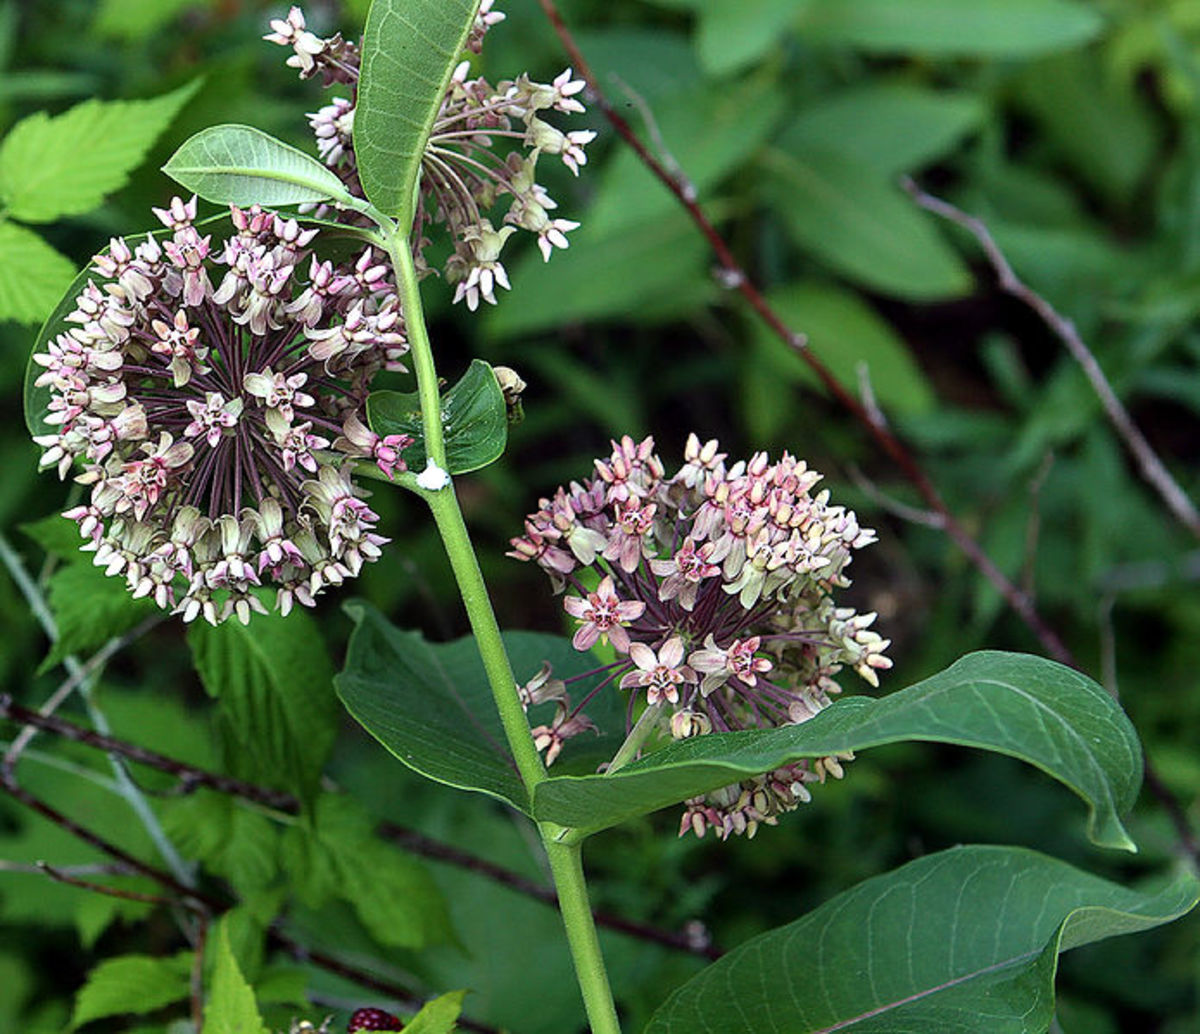 Milkweed is necessary for the life cycle of the Monarch Butterfly.